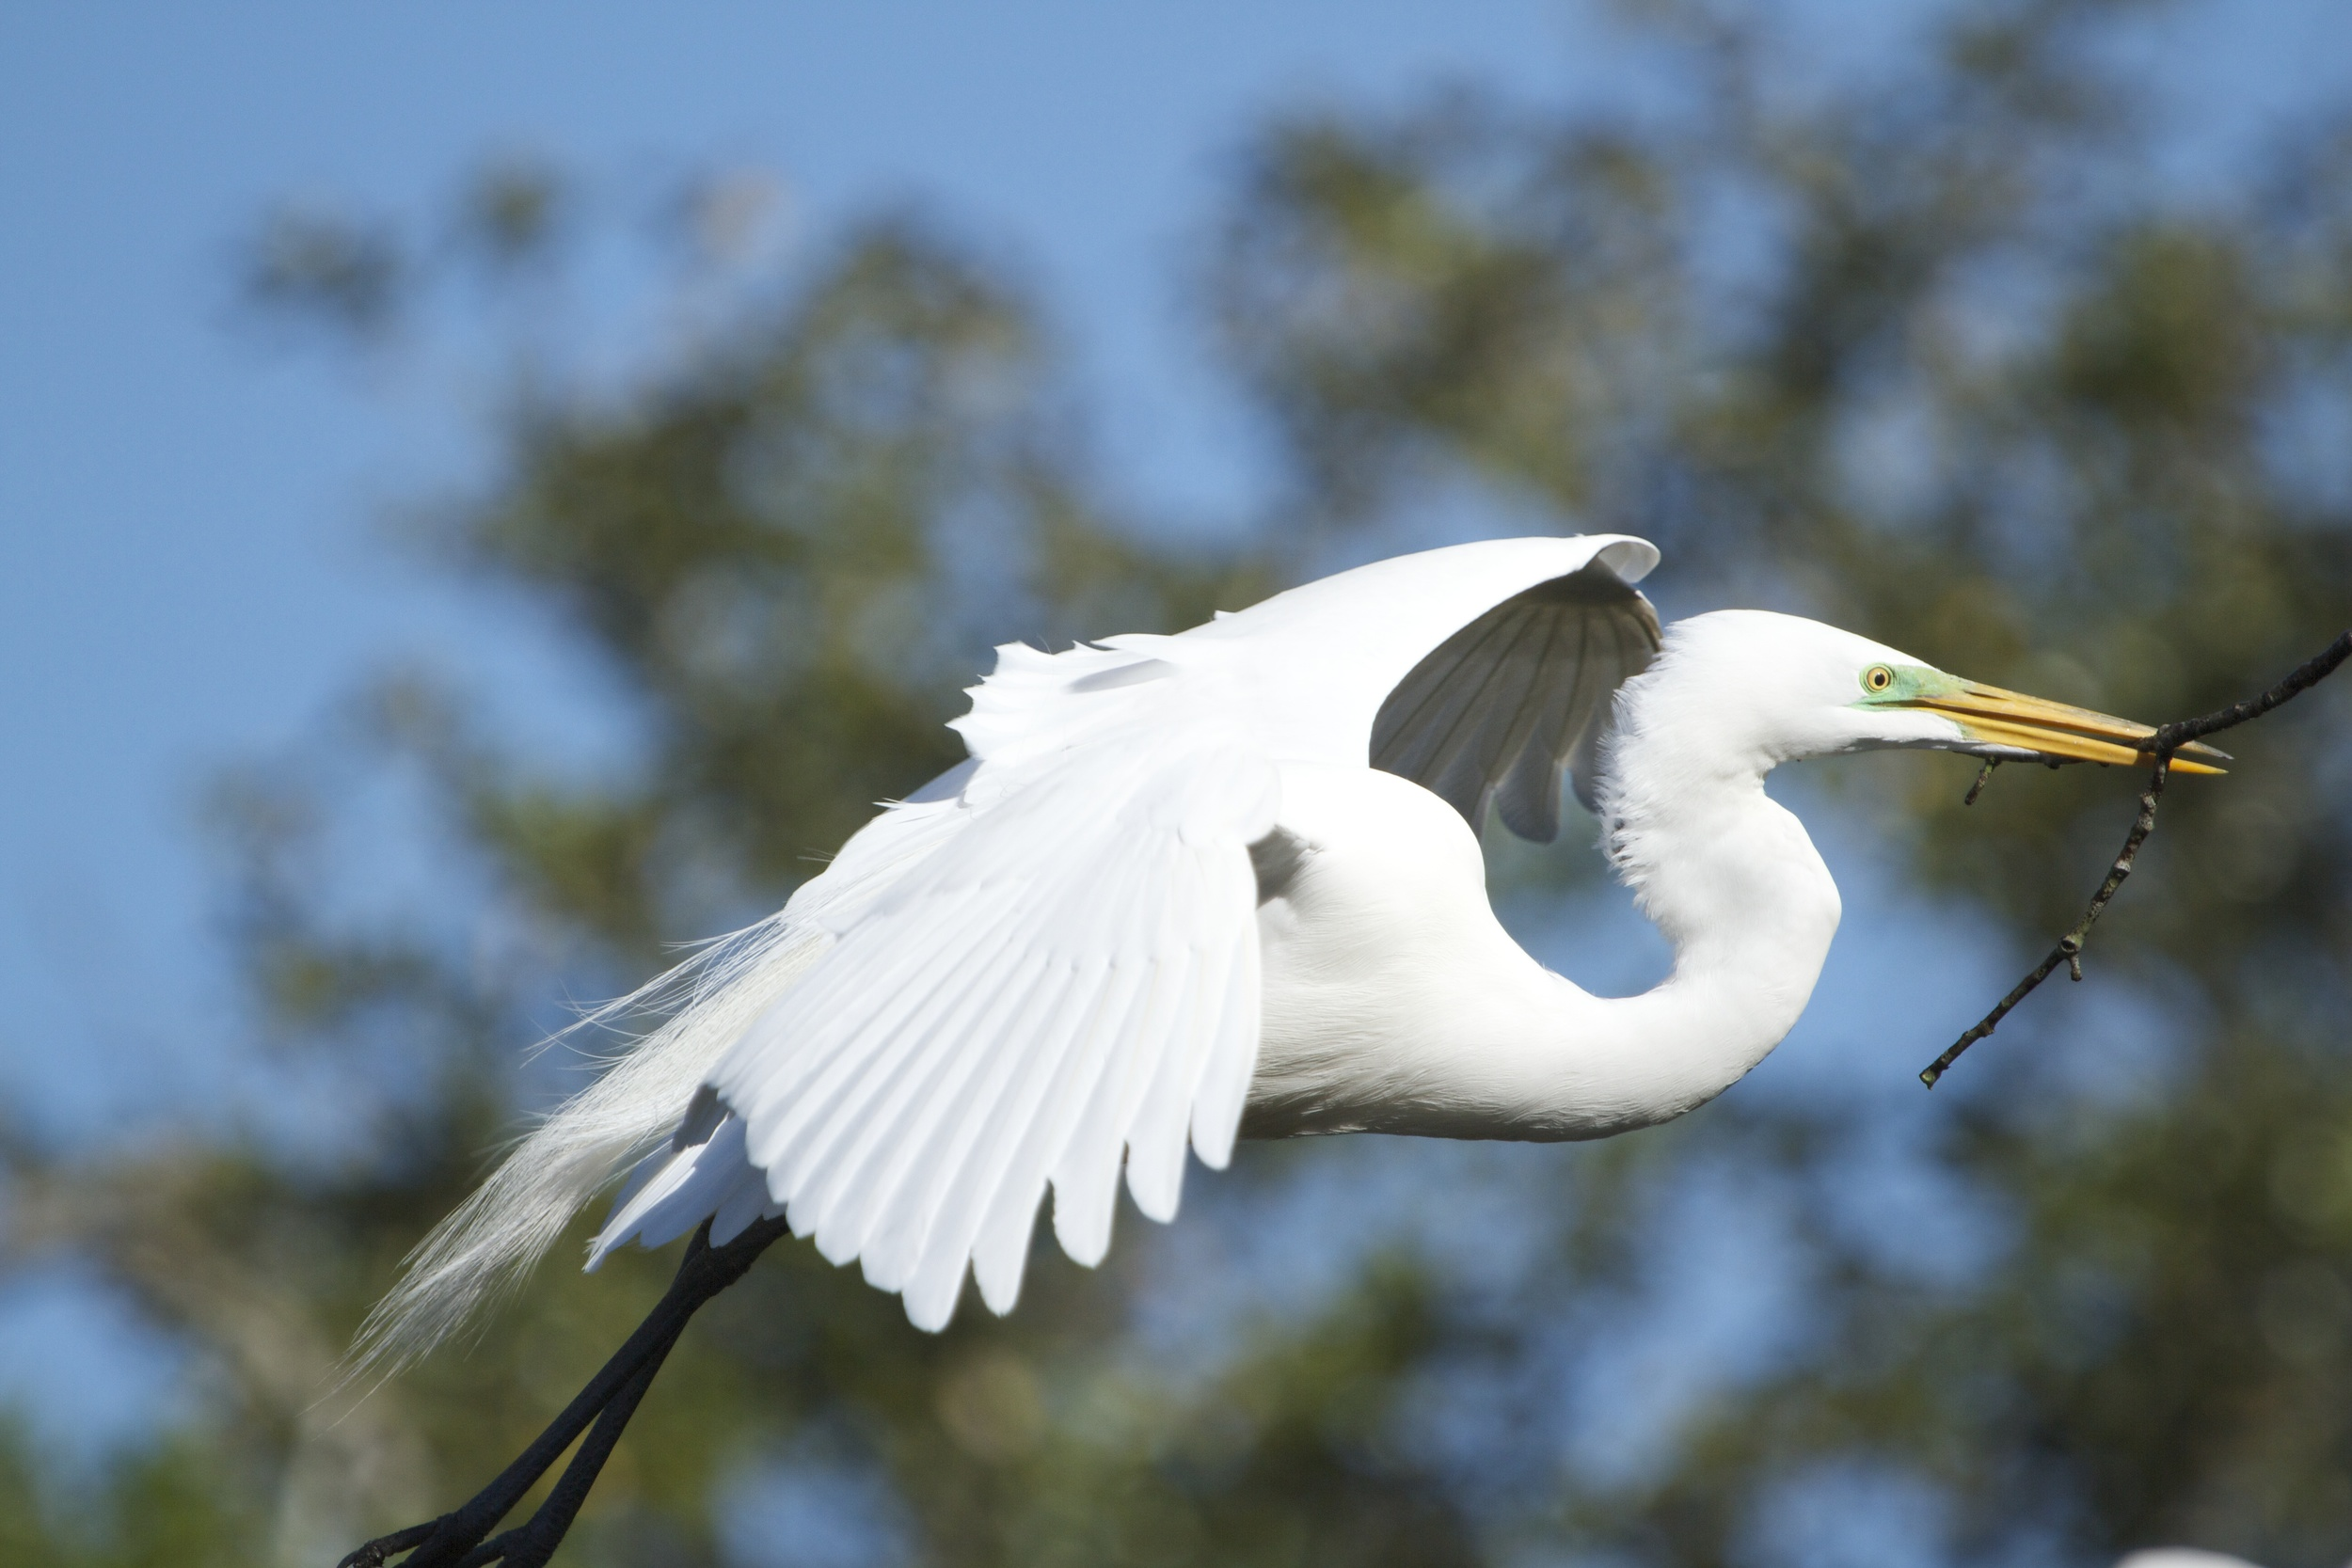 The Great Egret now in breeding colors busily buids its nest.